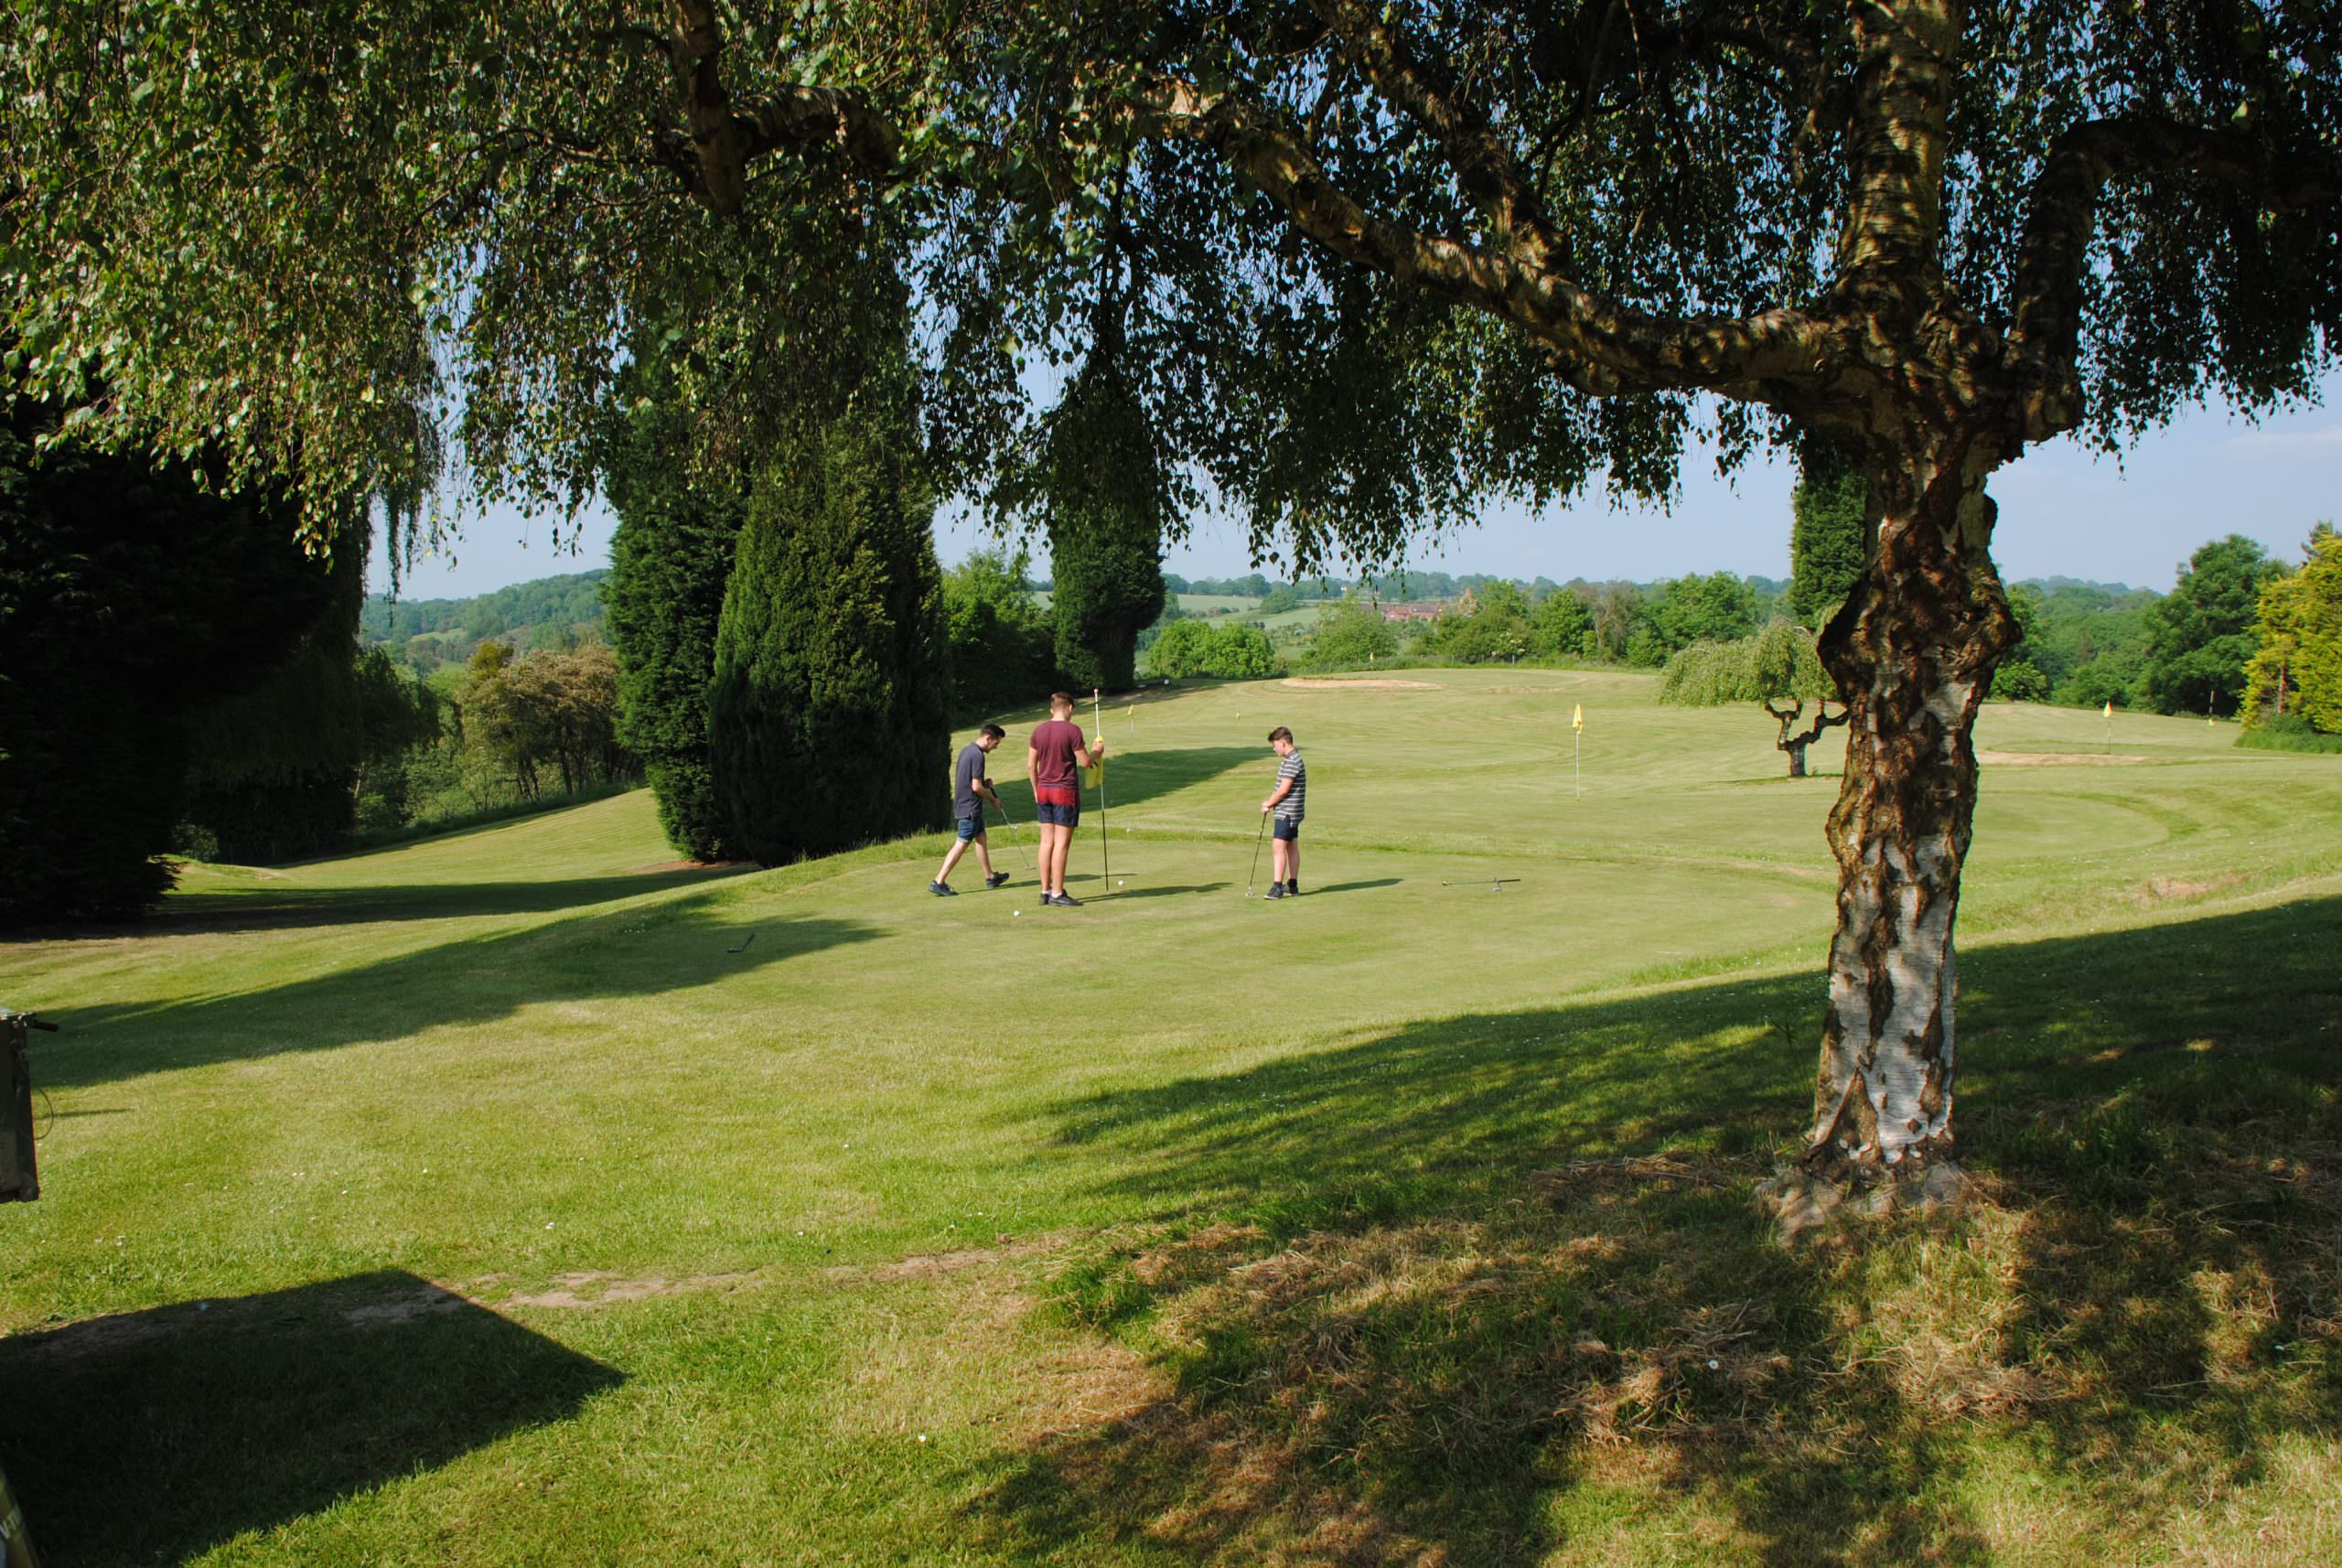 A view across Bank Farm Holiday Park, looking down through the trees, across one of the putting greens, down the fairway. It's a beautiful day, the trees are in full leaf, there are 3 boys on the putting green and the sky is crystal blue.